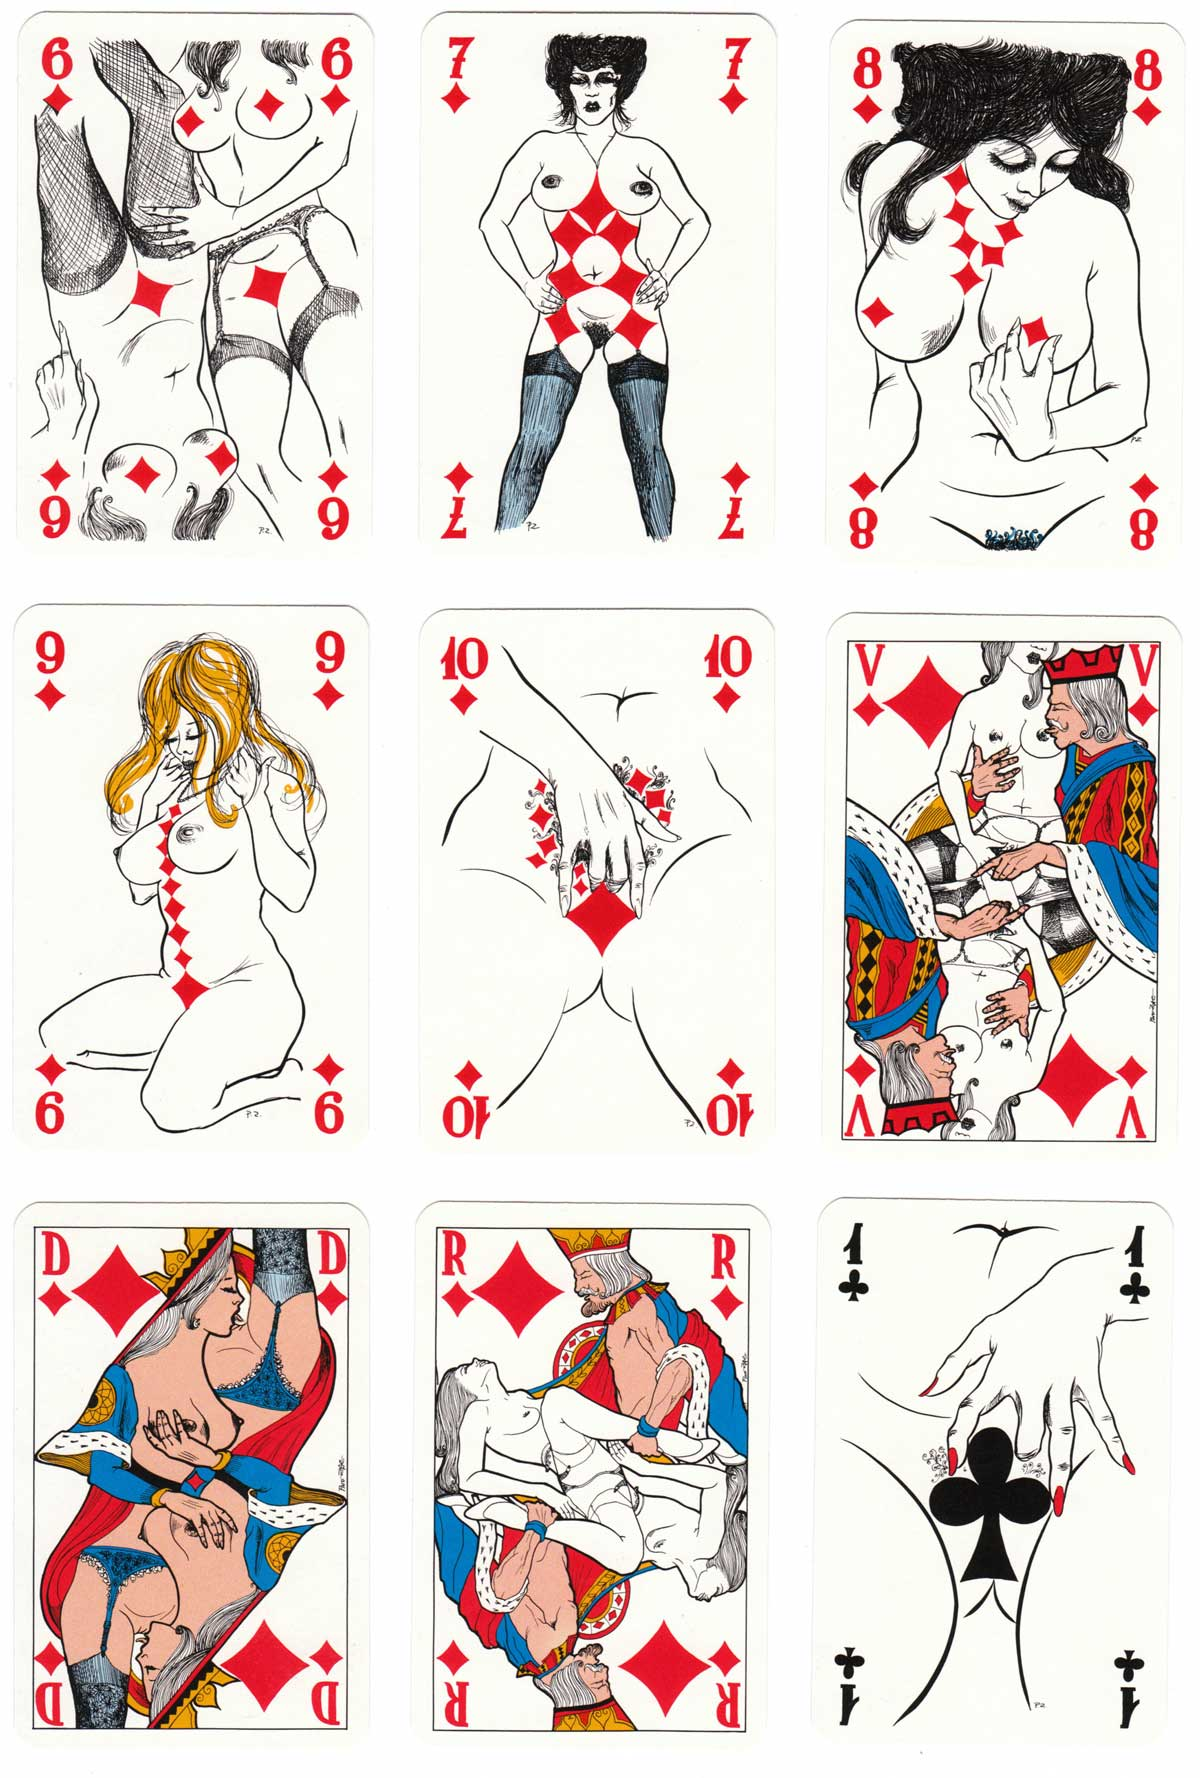 Eroticartes with drawings by Pino Zac, 1983